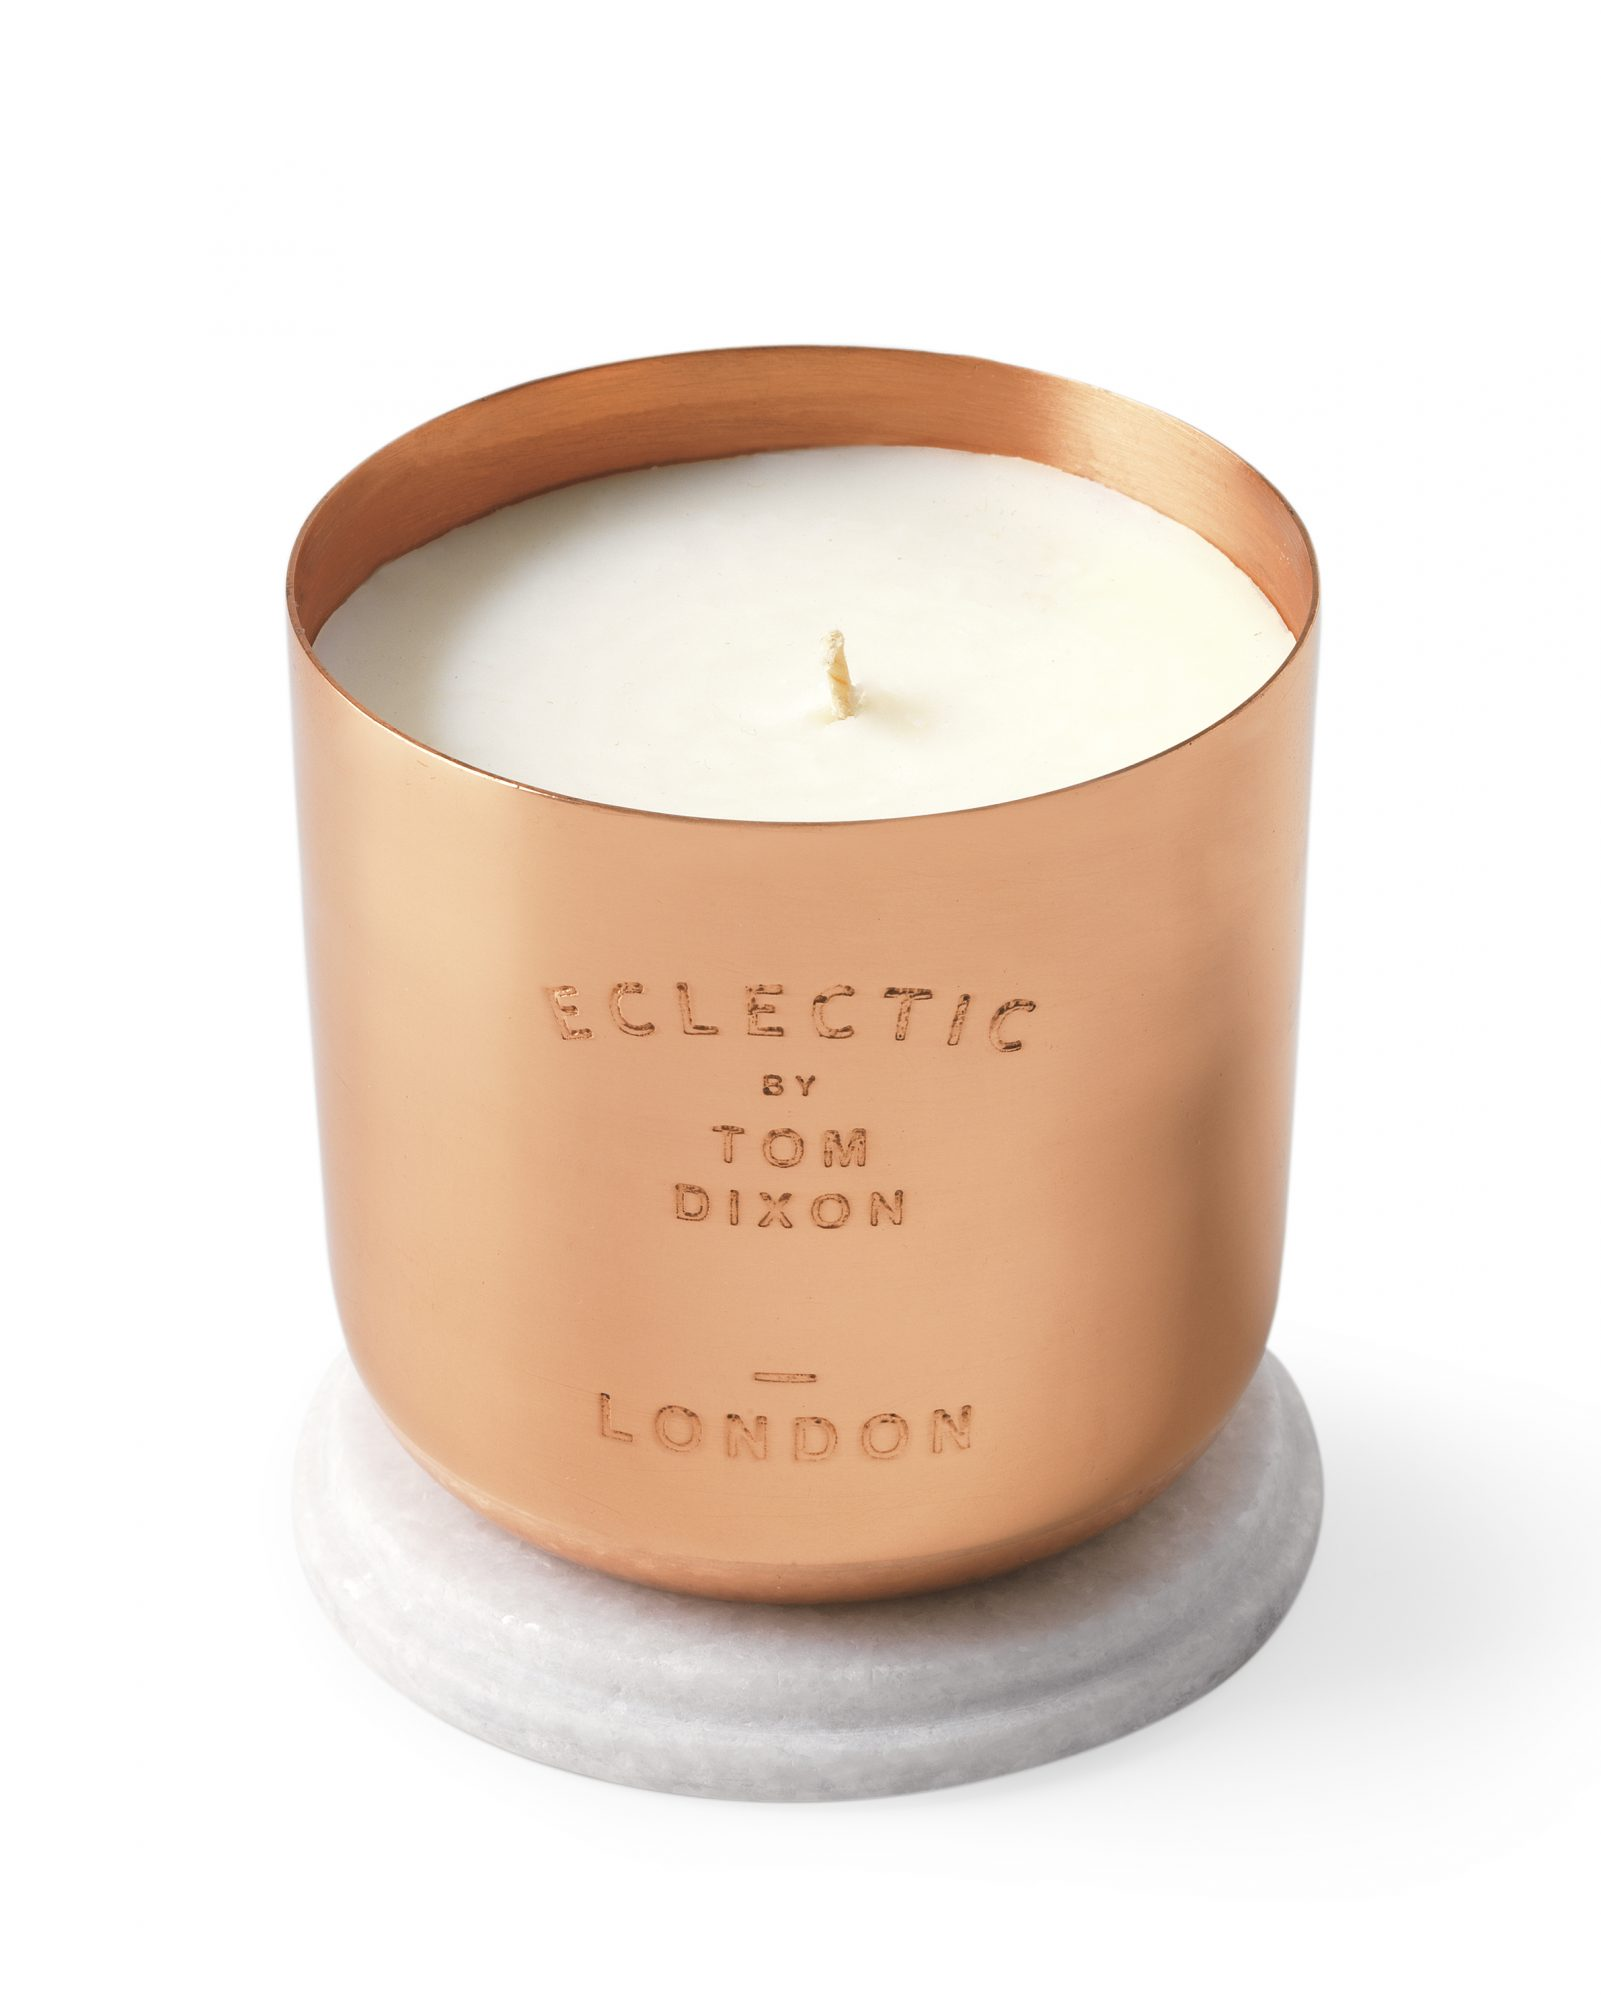 copper-silos-tom-dickson-candle-0040-d111902.jpg